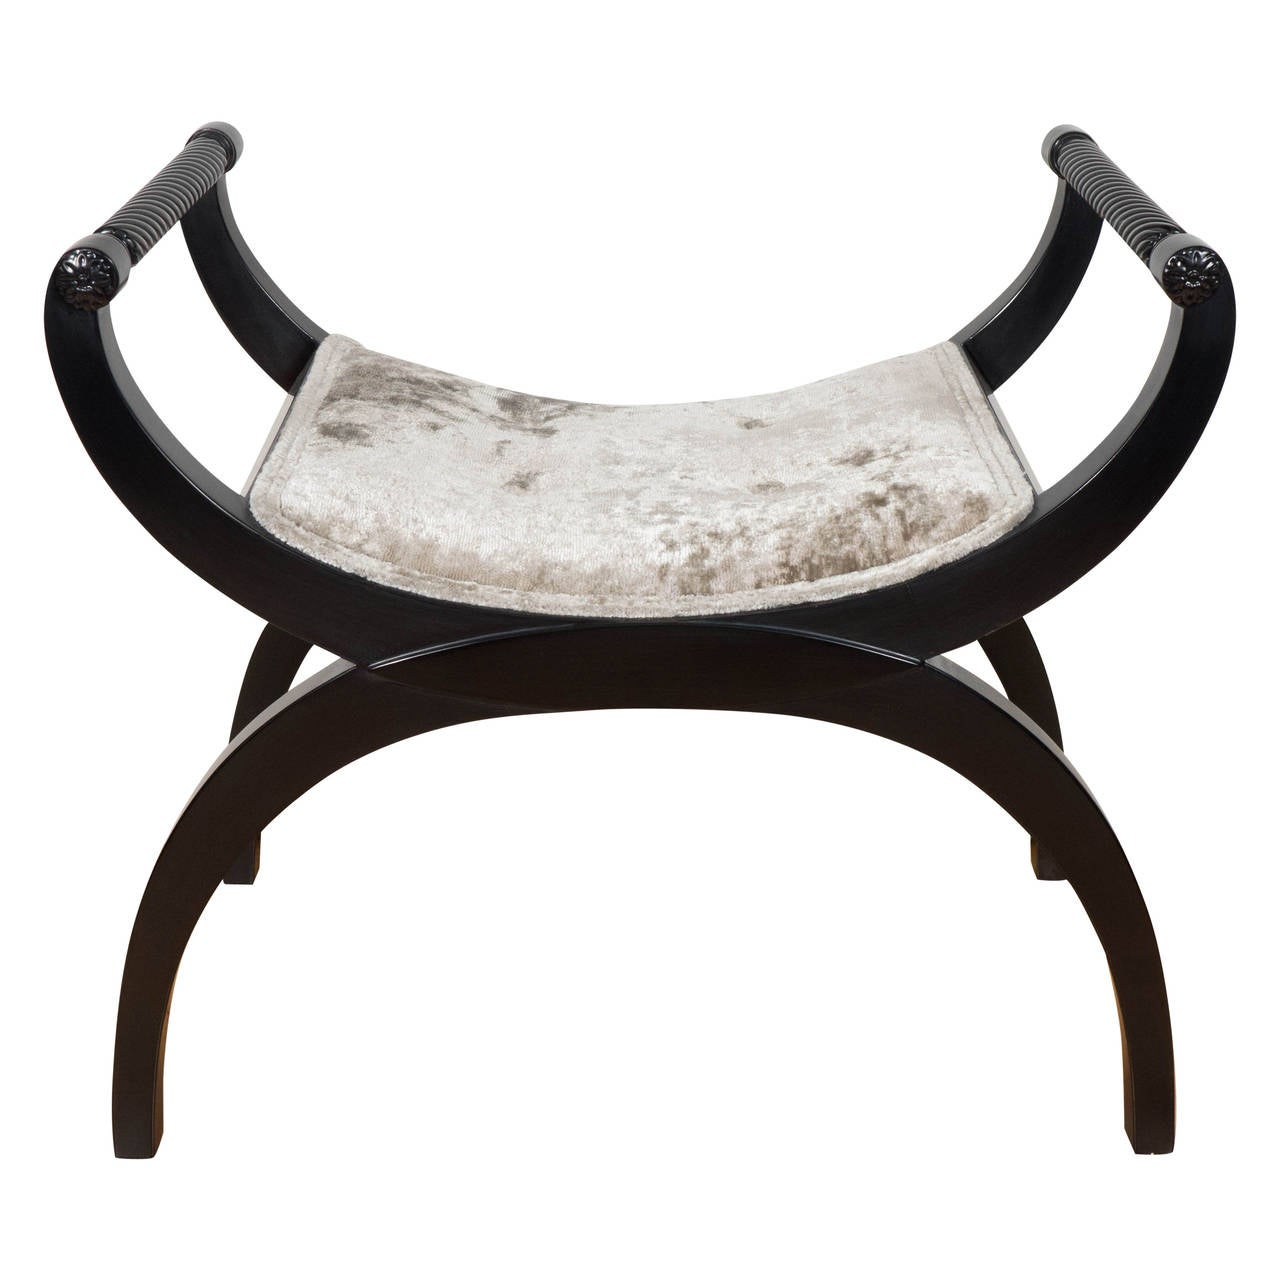 Gorgeous Mid-Century Modernist Bench or Stool in Oyster Gauffraged Velvet